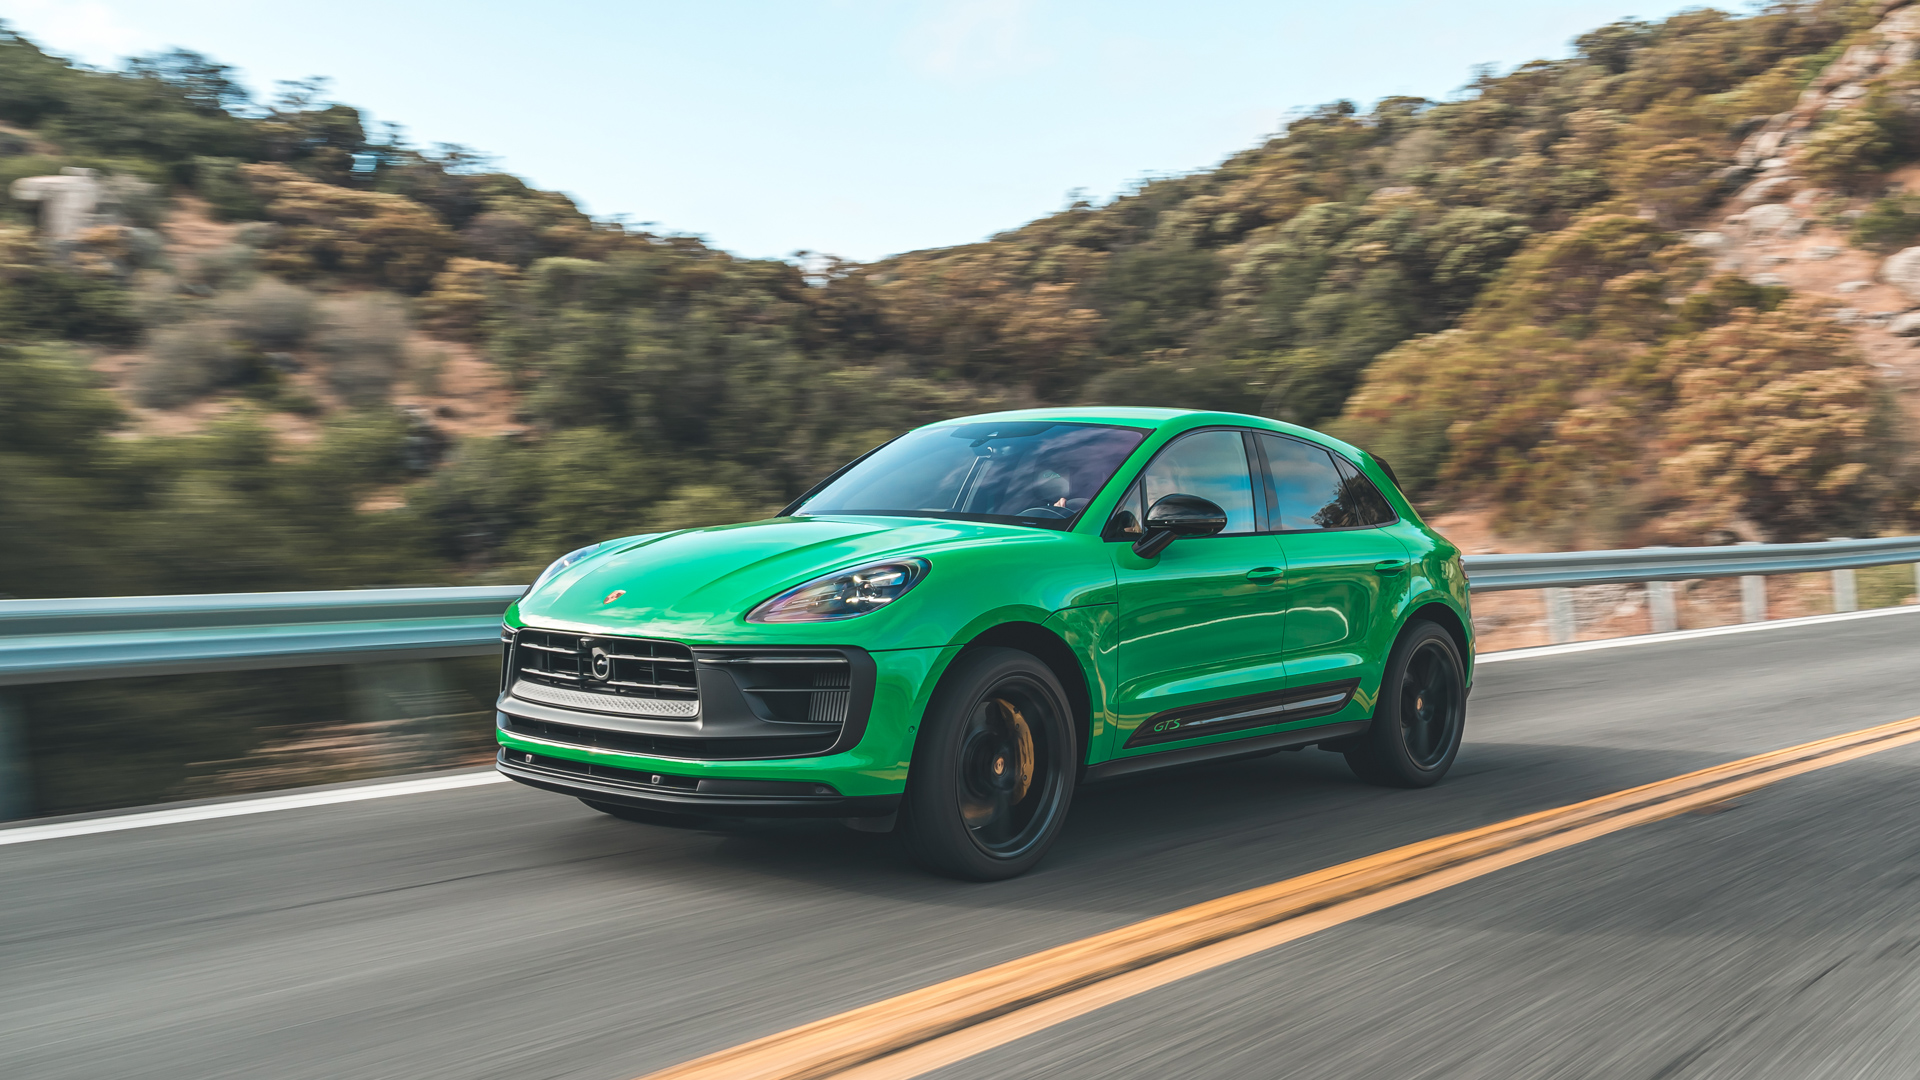 First drive review: 2022 Porsche Macan GTS makes the gas-powered Macan's last stand